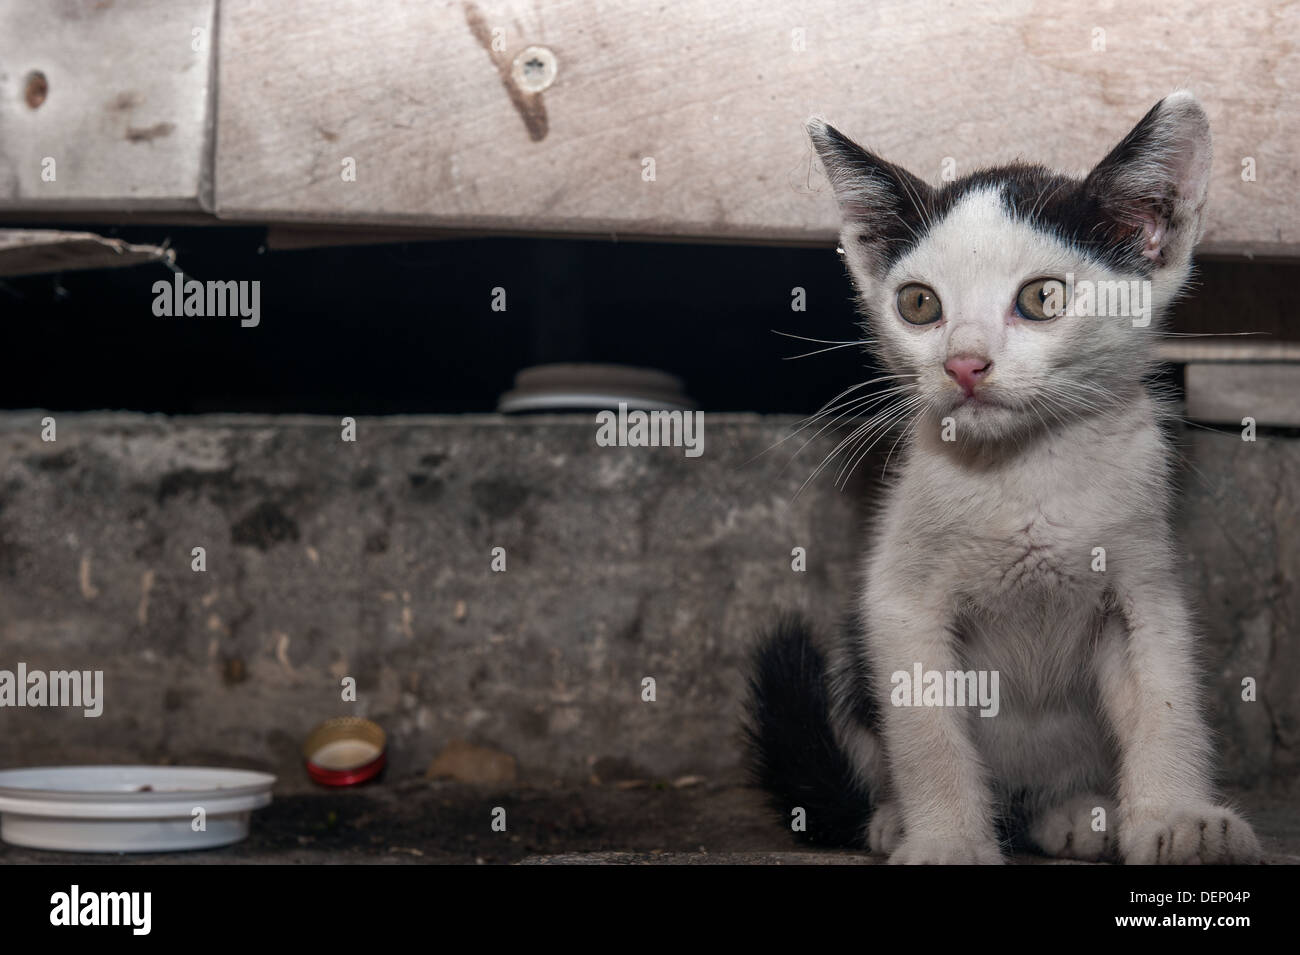 Cat In Gutter High Resolution Stock Photography And Images Alamy